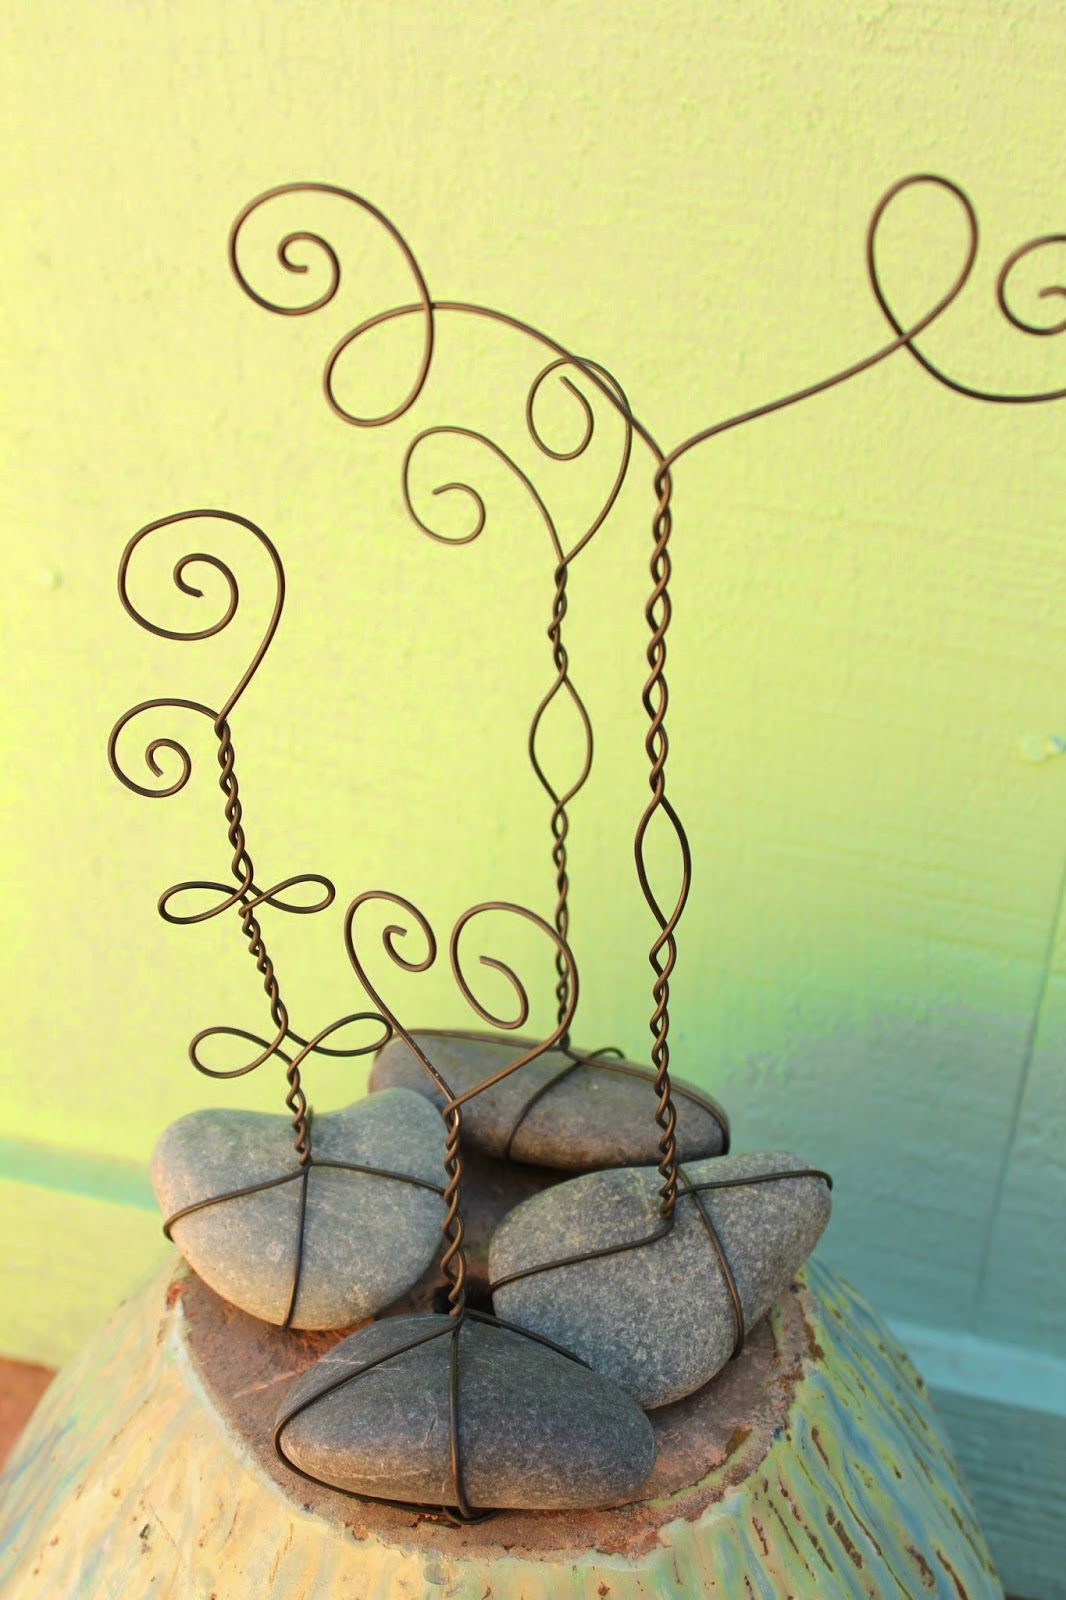 LilyGirl Jewelry DIY Wire Photo Stands Diy jewelry